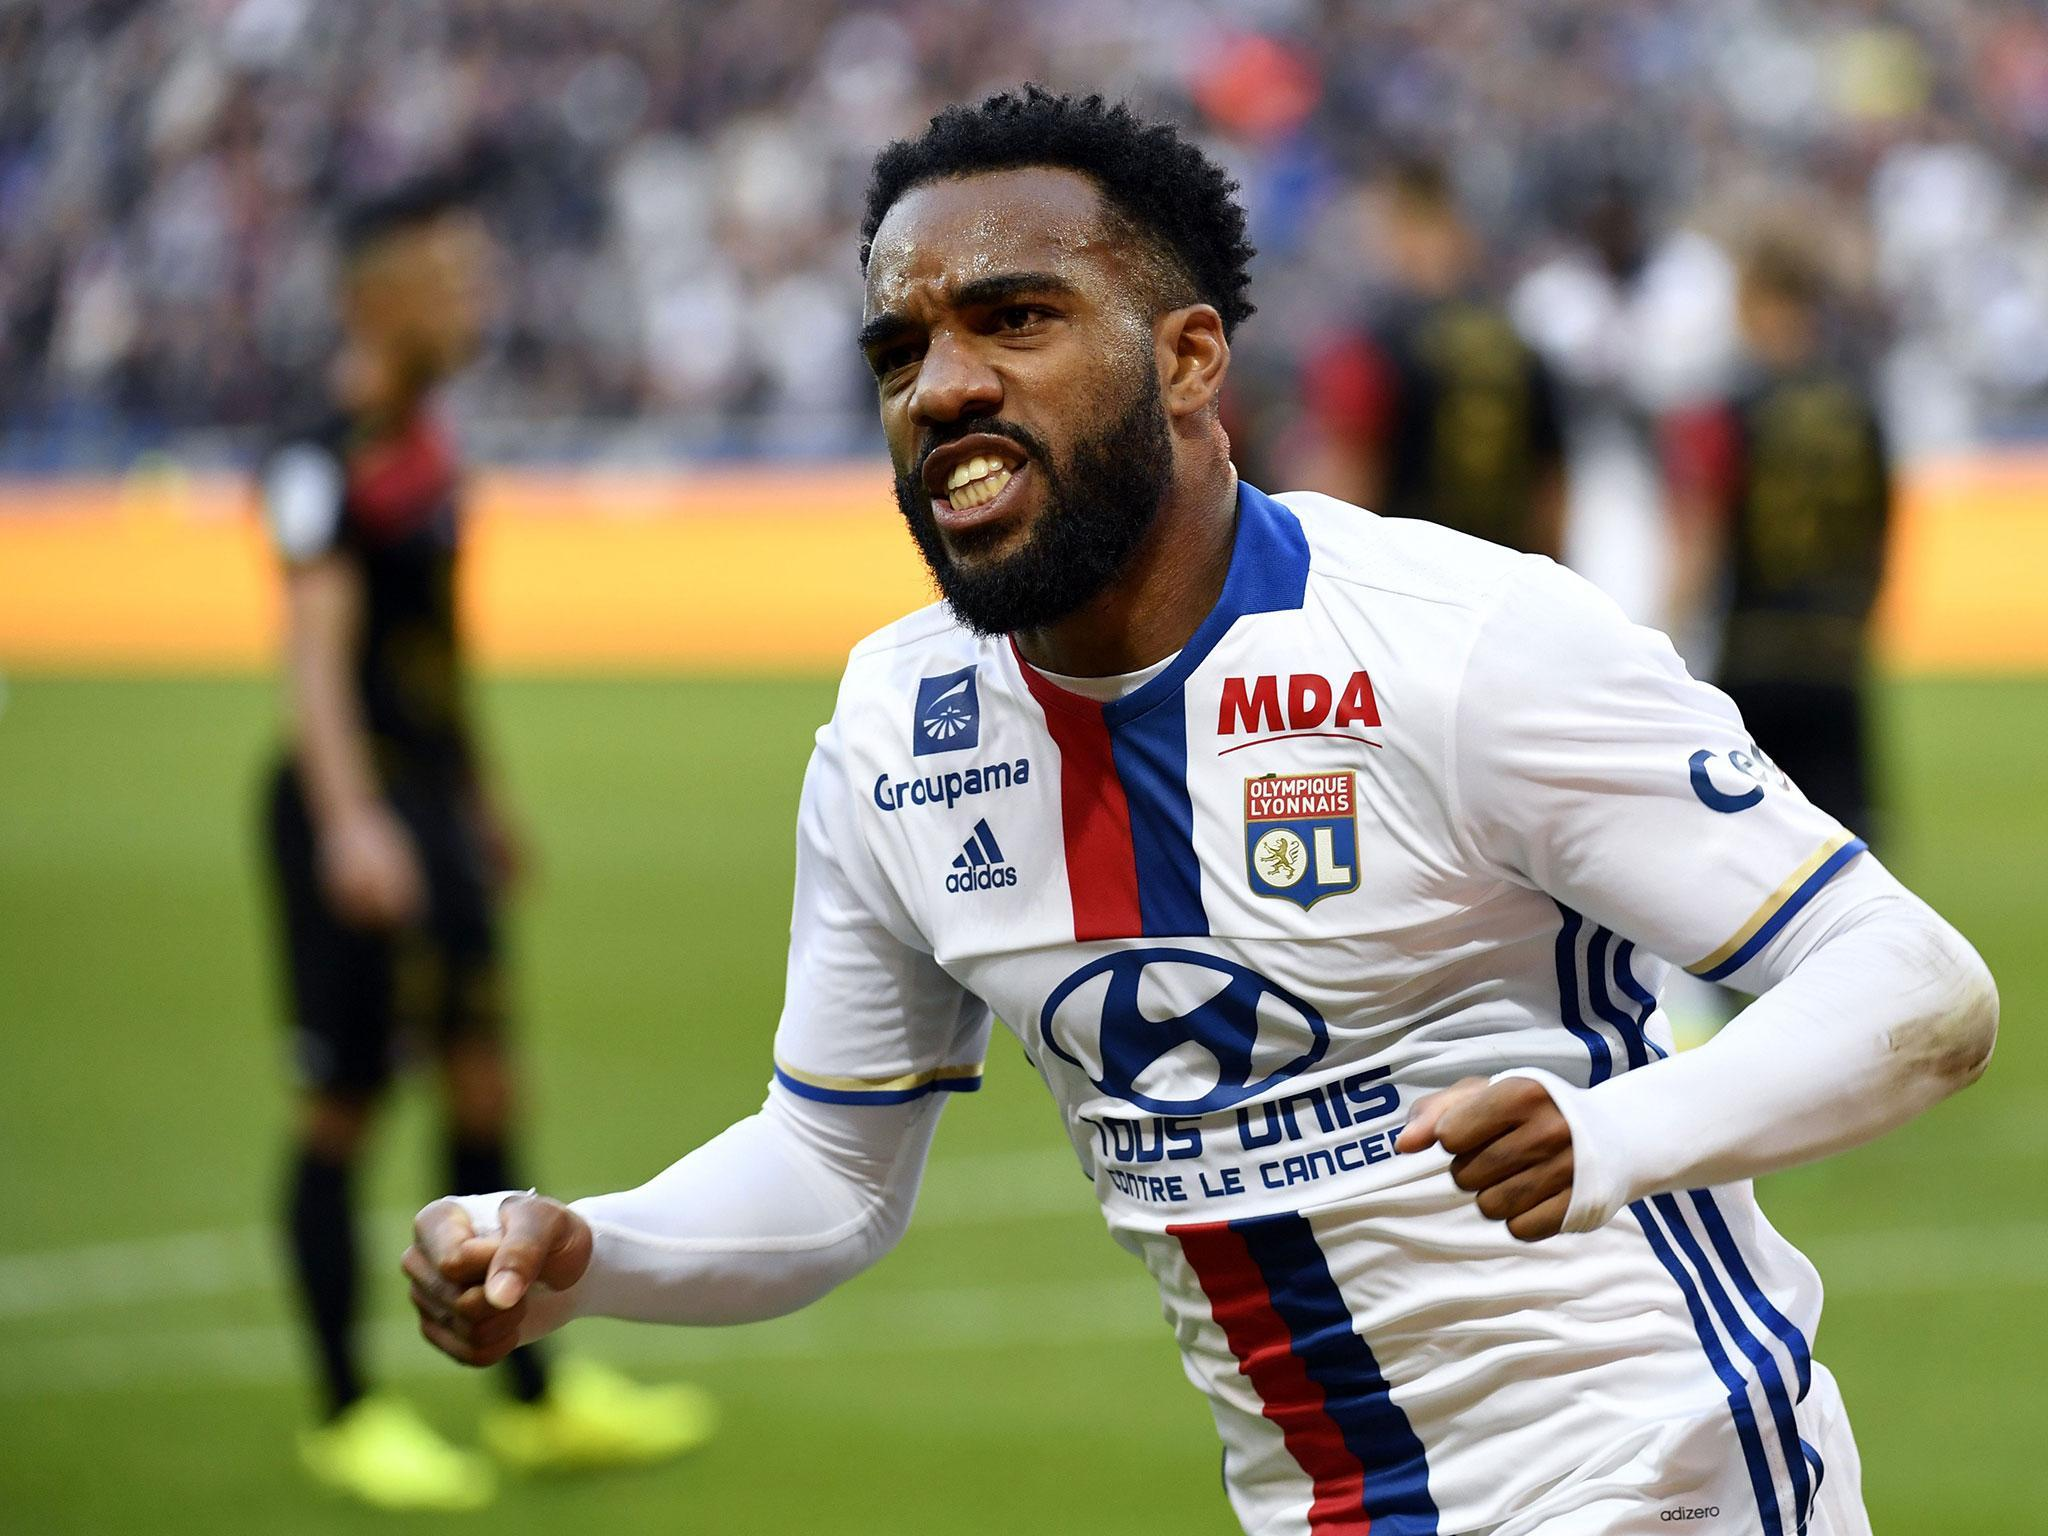 Alexandre Lacazette 9 The Players line Arsenal munity